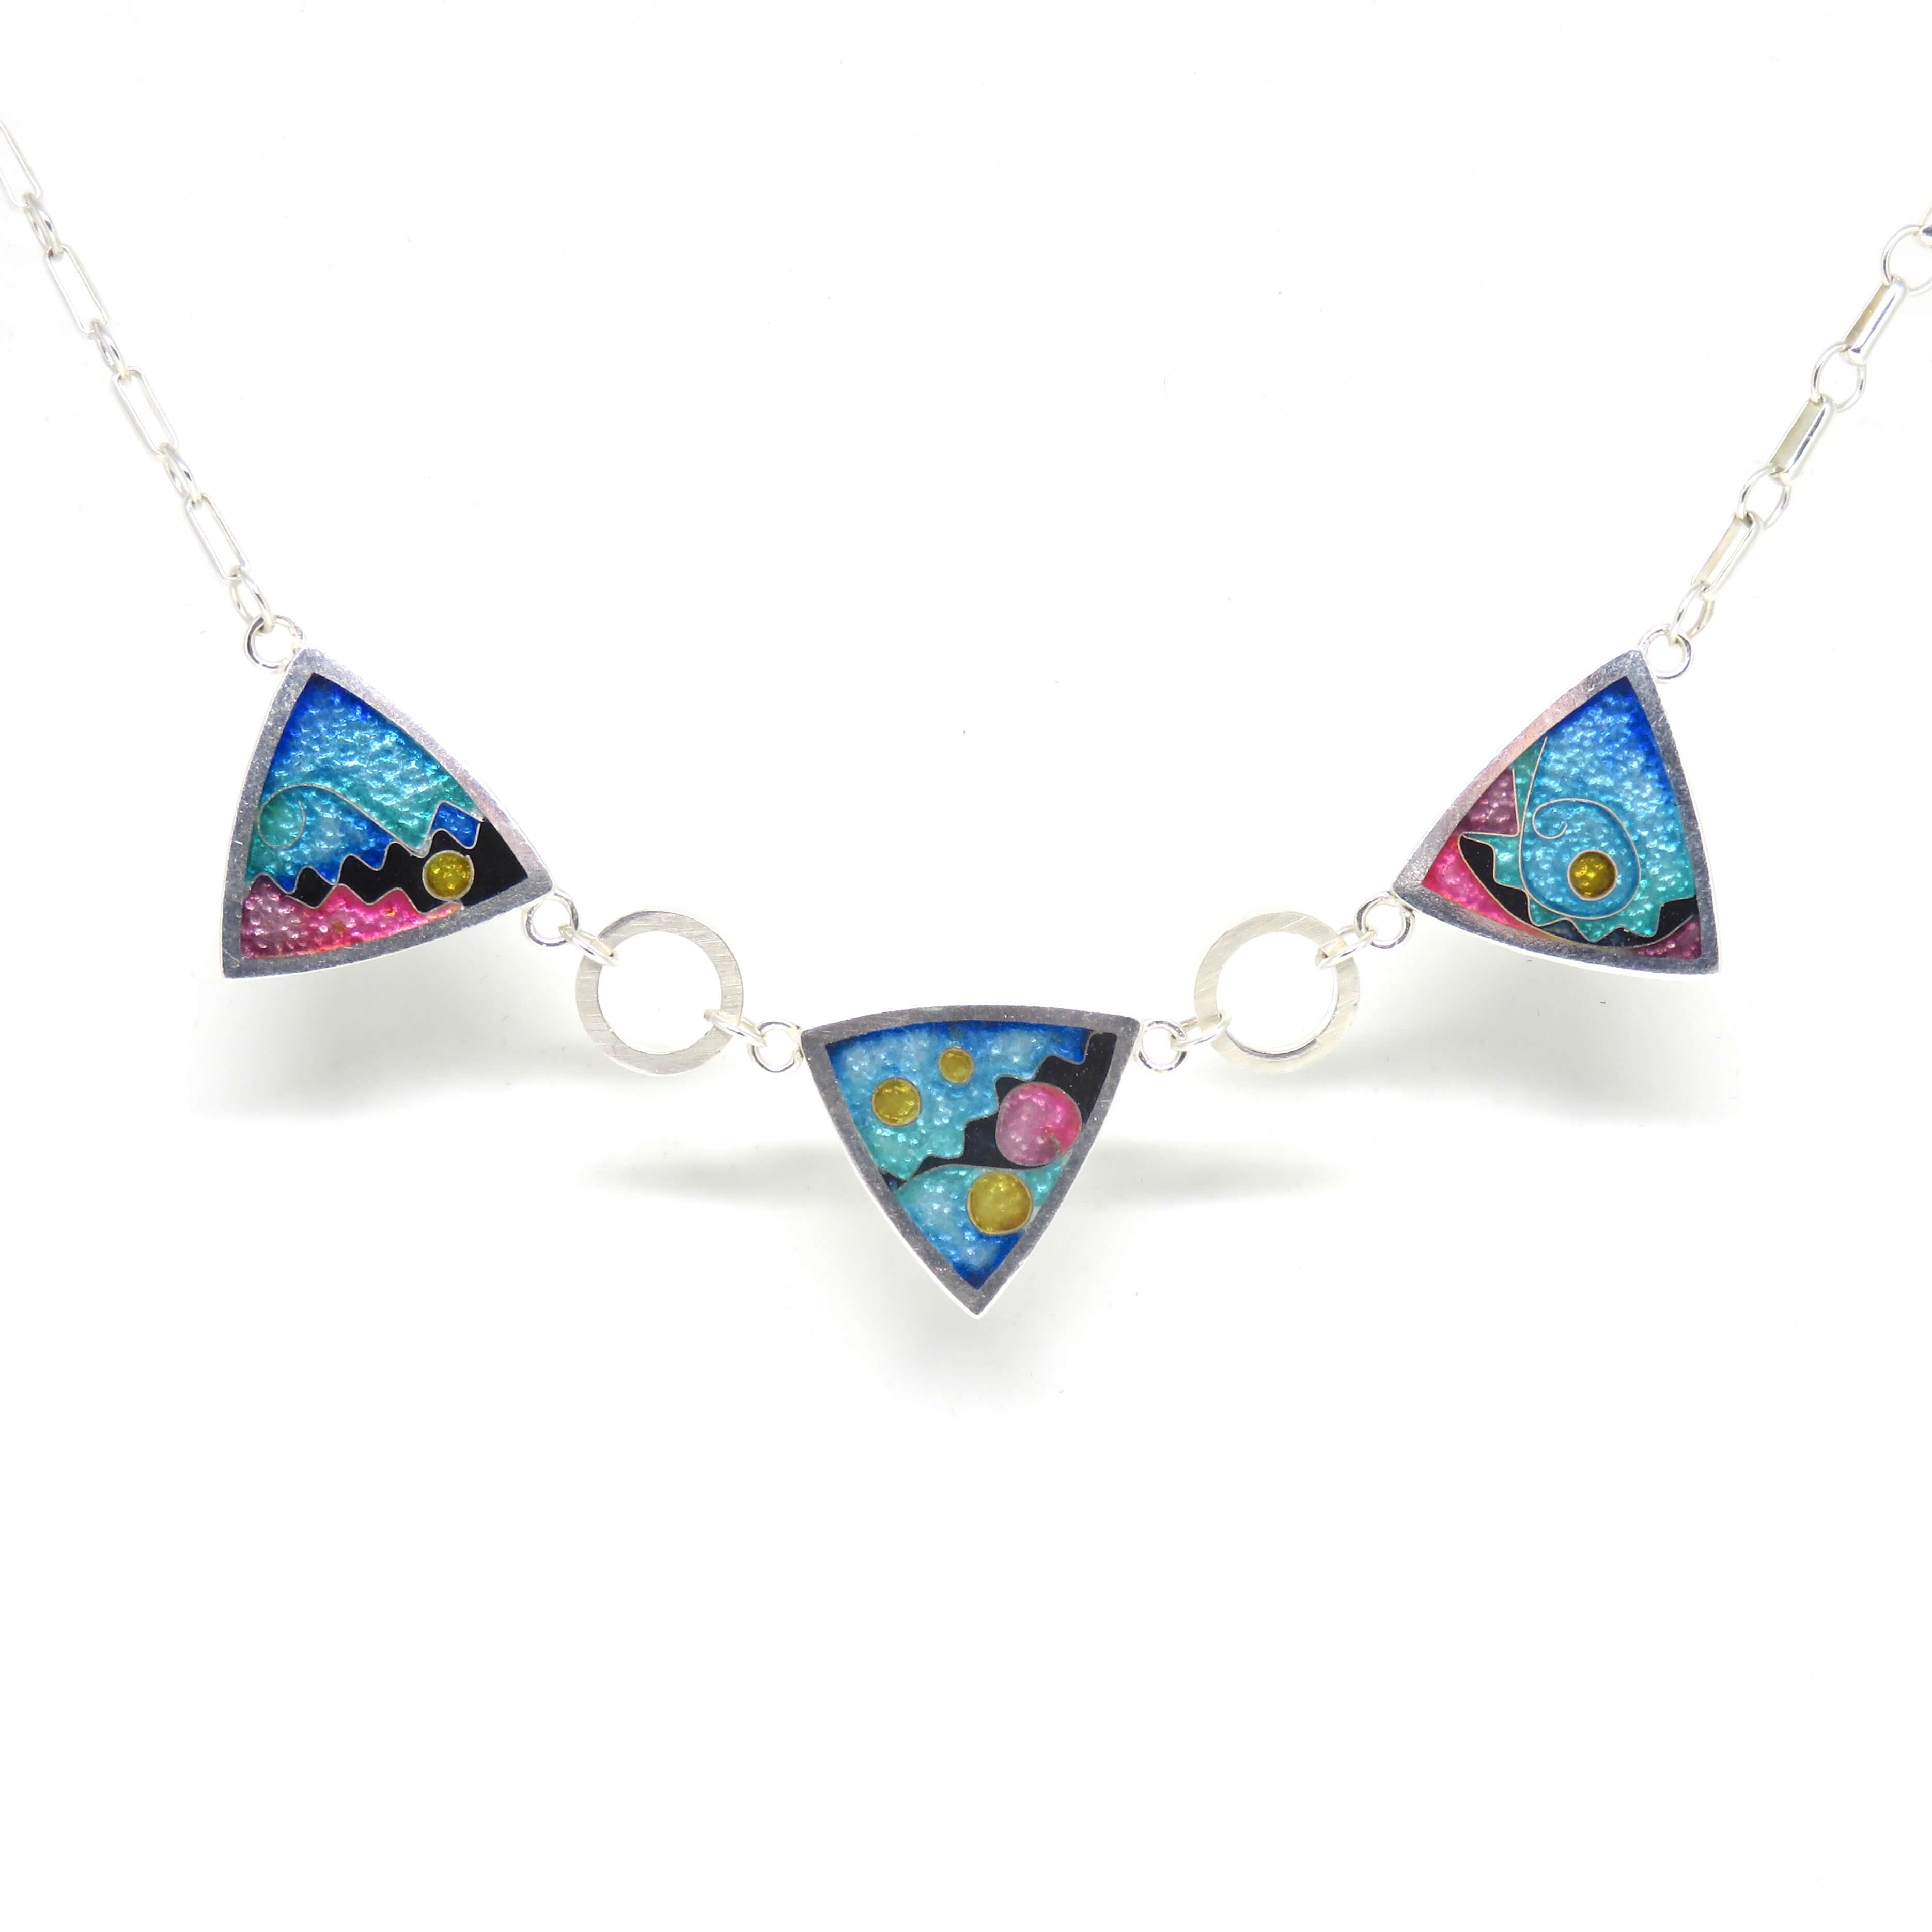 Jewelry by Lanni: Lani Sidoti, cloisonné, handcrafted cloisonné jewelry